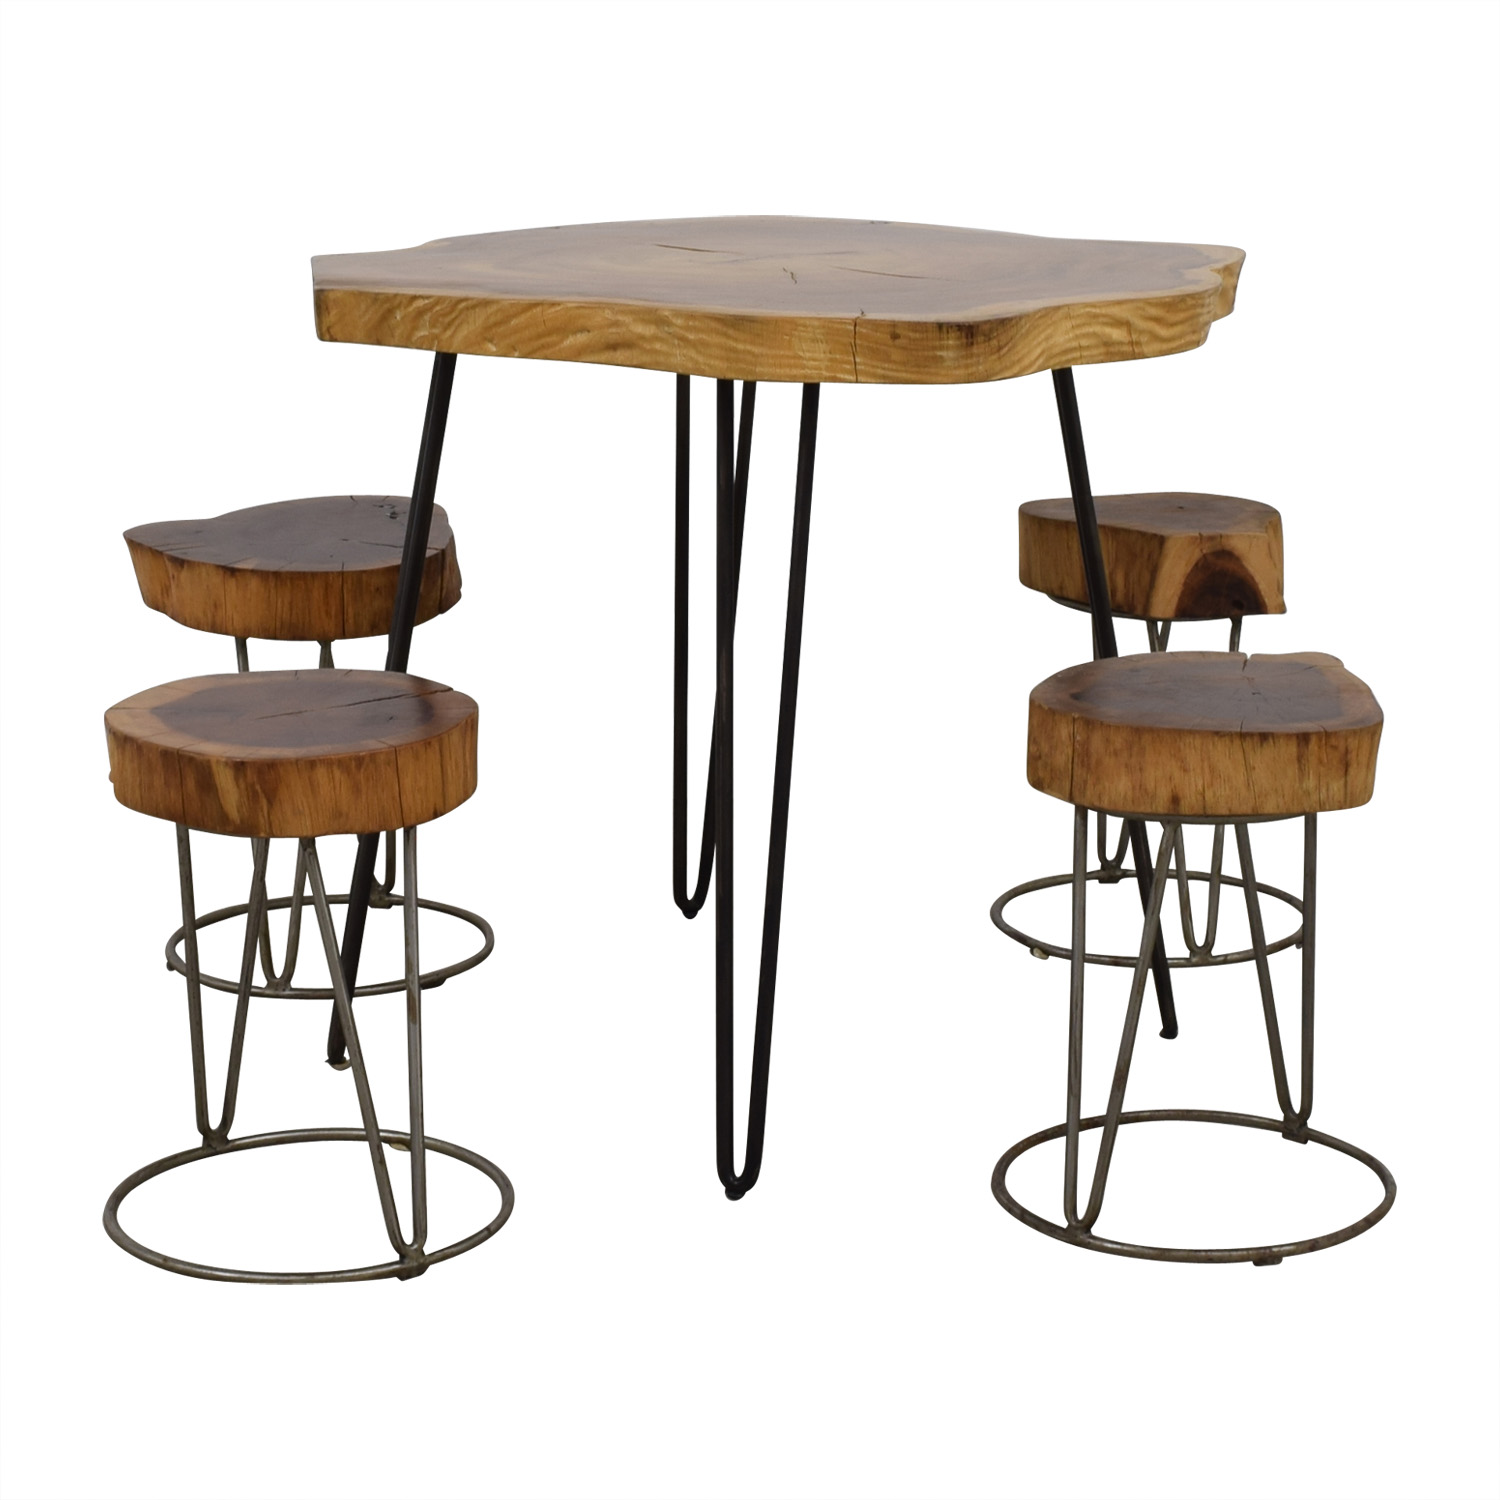 From the Source From the Source Custom Raw Rustic Wooden Table and Stools price